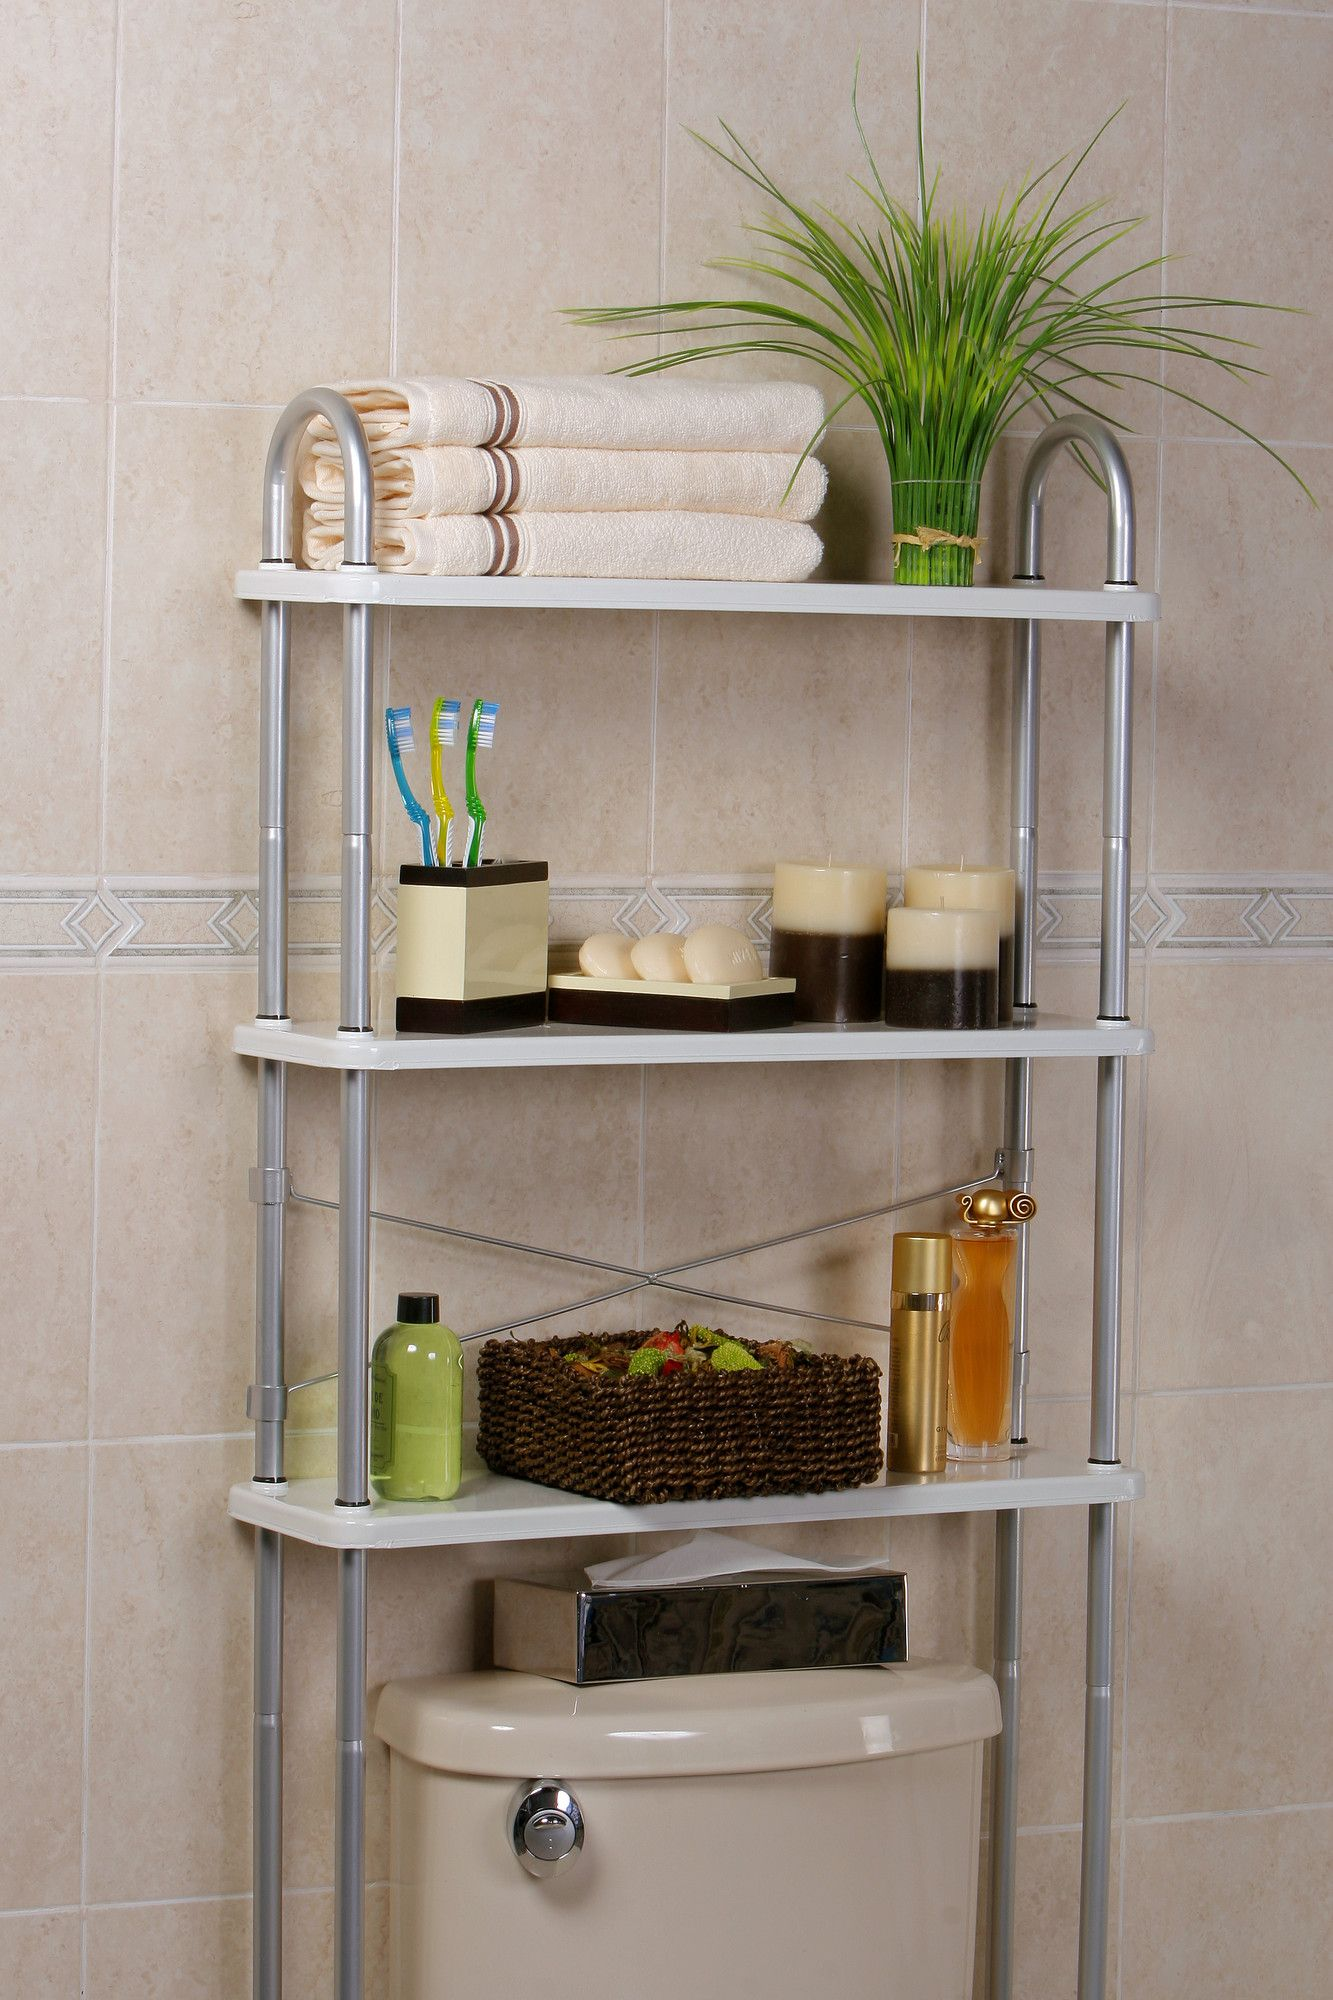 Features: -3 Solid metal shelves to organize all your bathroom needs ...